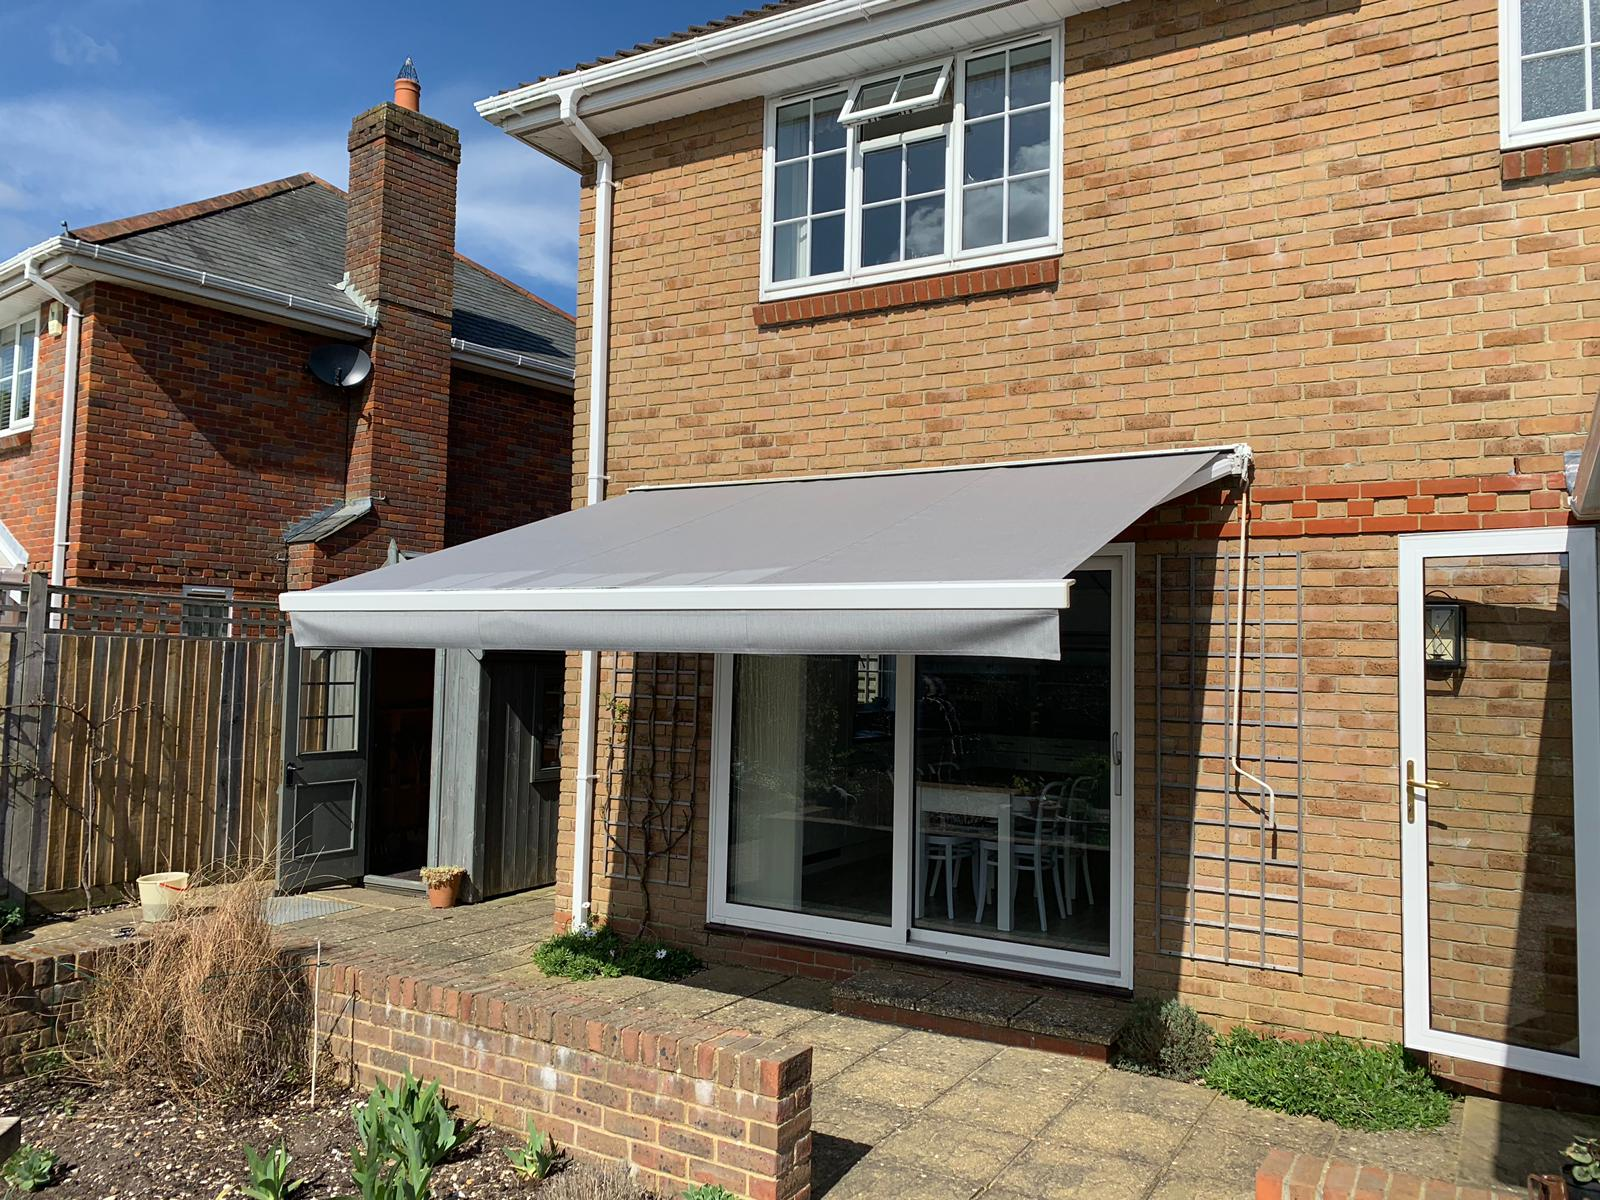 Patio Awning For South Facing Garden Radiant Blinds Ltd